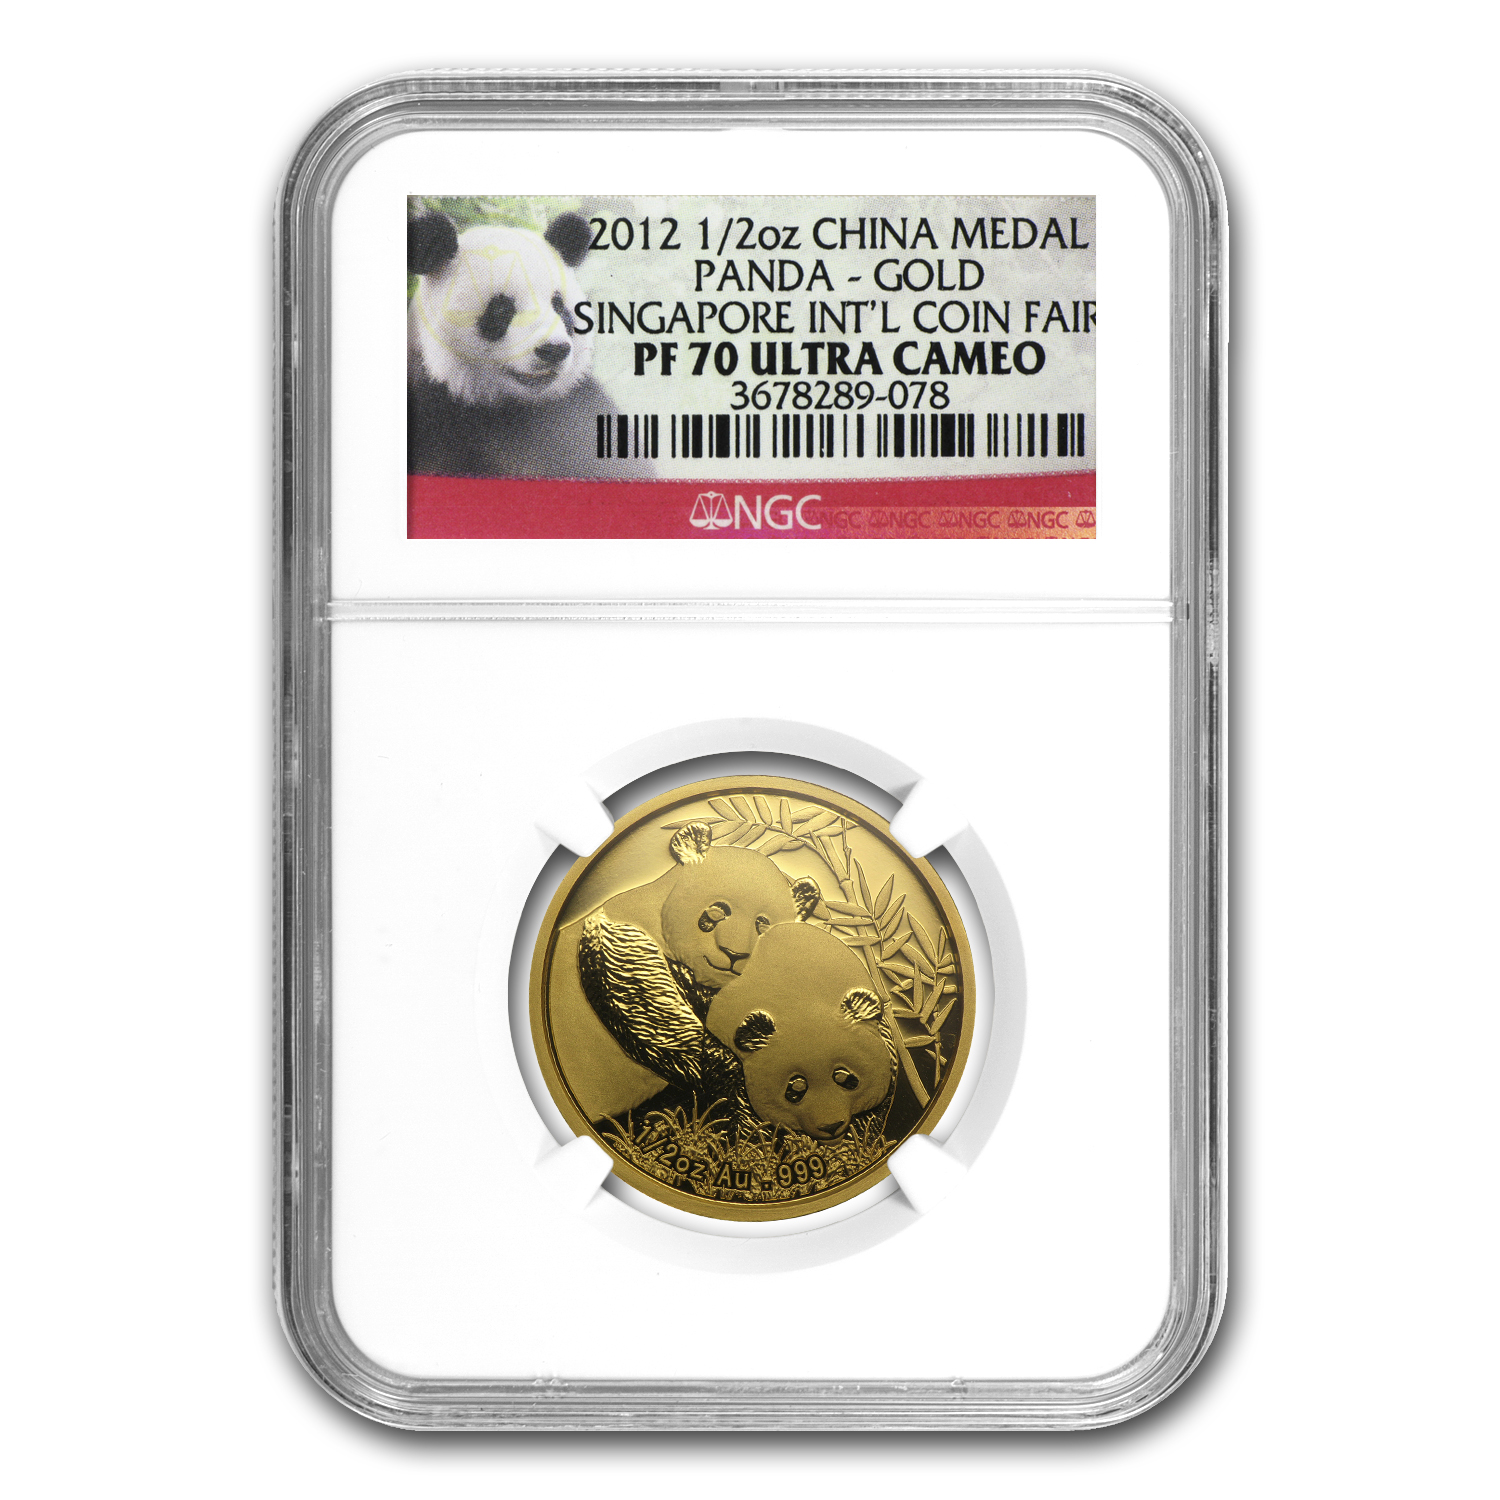 2012 China 1/2 oz Gold Panda PF-70 NGC (Singapore Coin Fair)